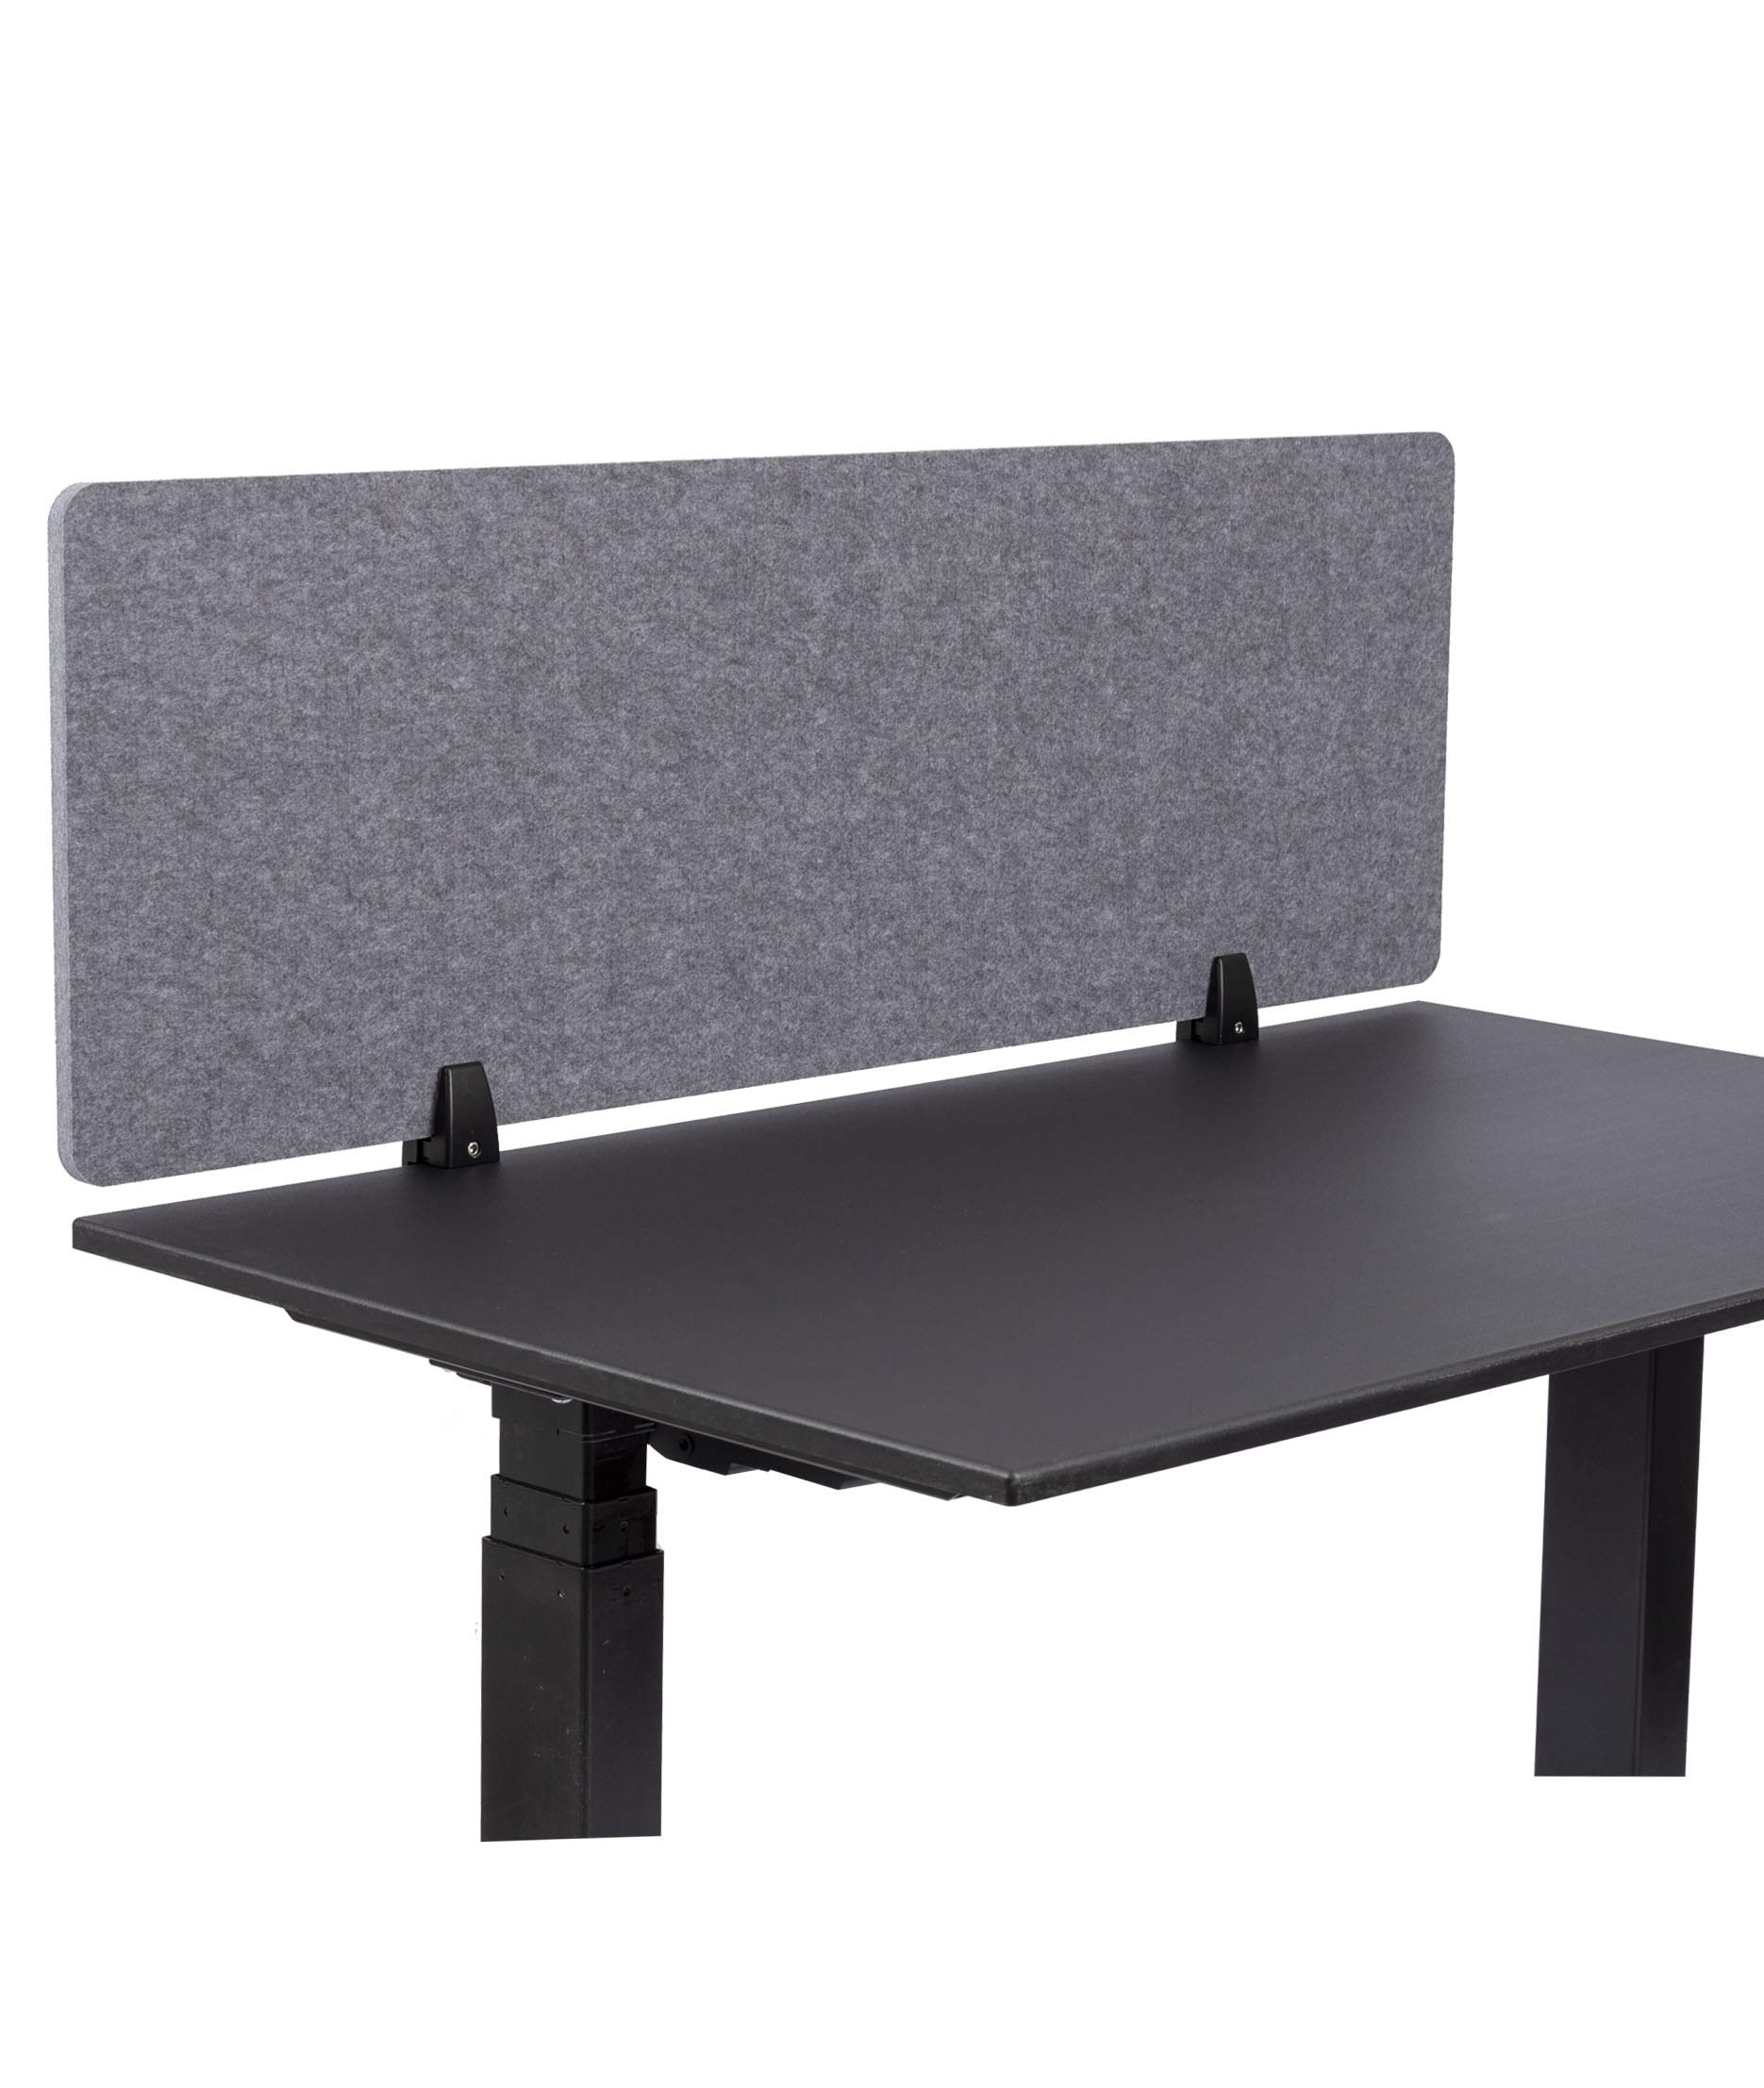 ReFocus Raw Clamp-On Acoustic Desk Divider - Reduce Noise and Visual Distractions with This Lightweight Desk Mounted Privacy Panel (Castle Gray, 48'' X 16'') by Stand Up Desk Store